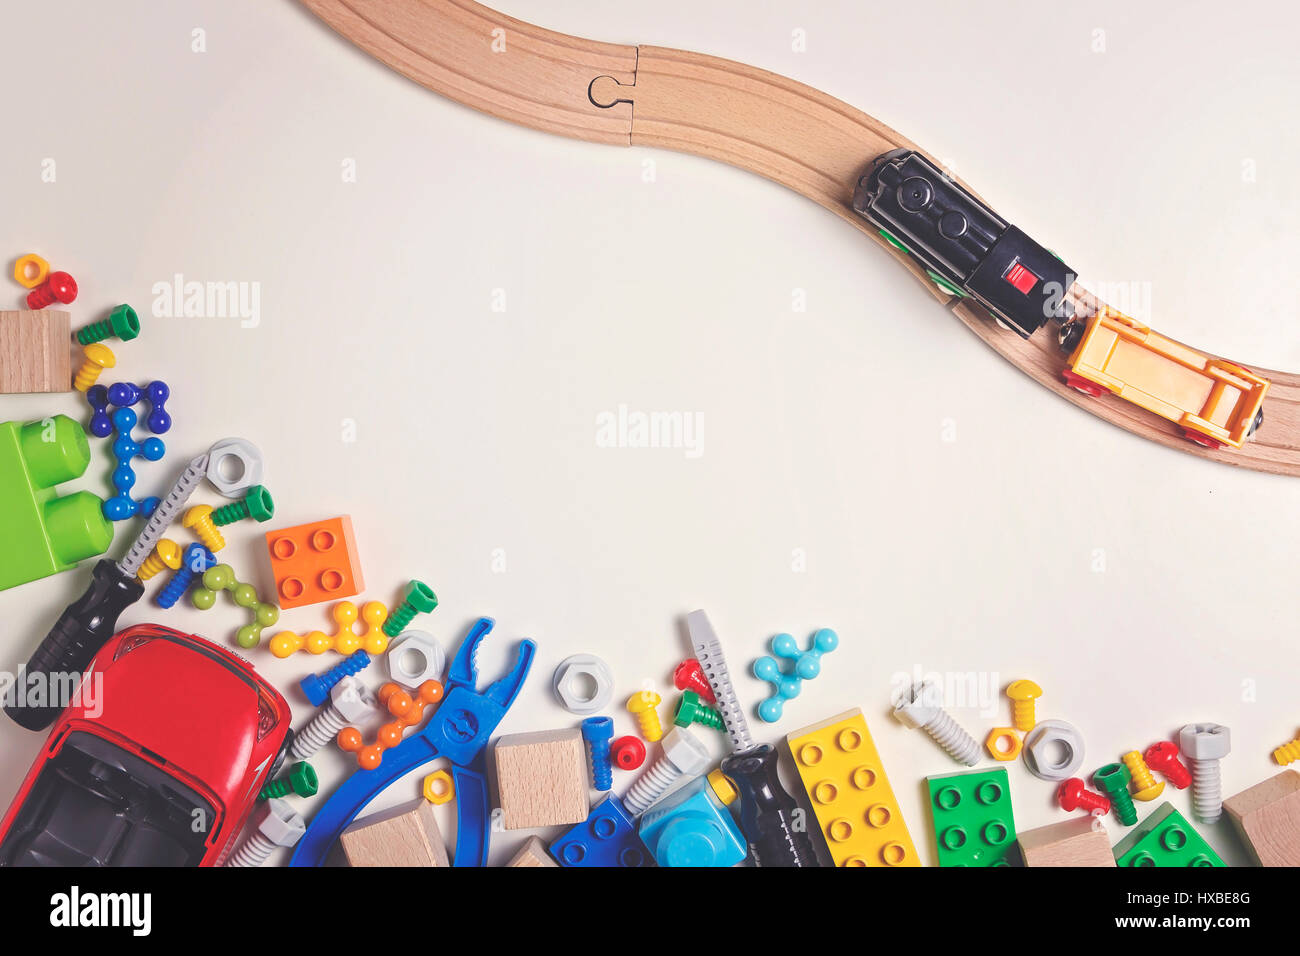 Colorful kids toys on white background as frame with copy space for text. Top view. Flat lay. Stock Photo